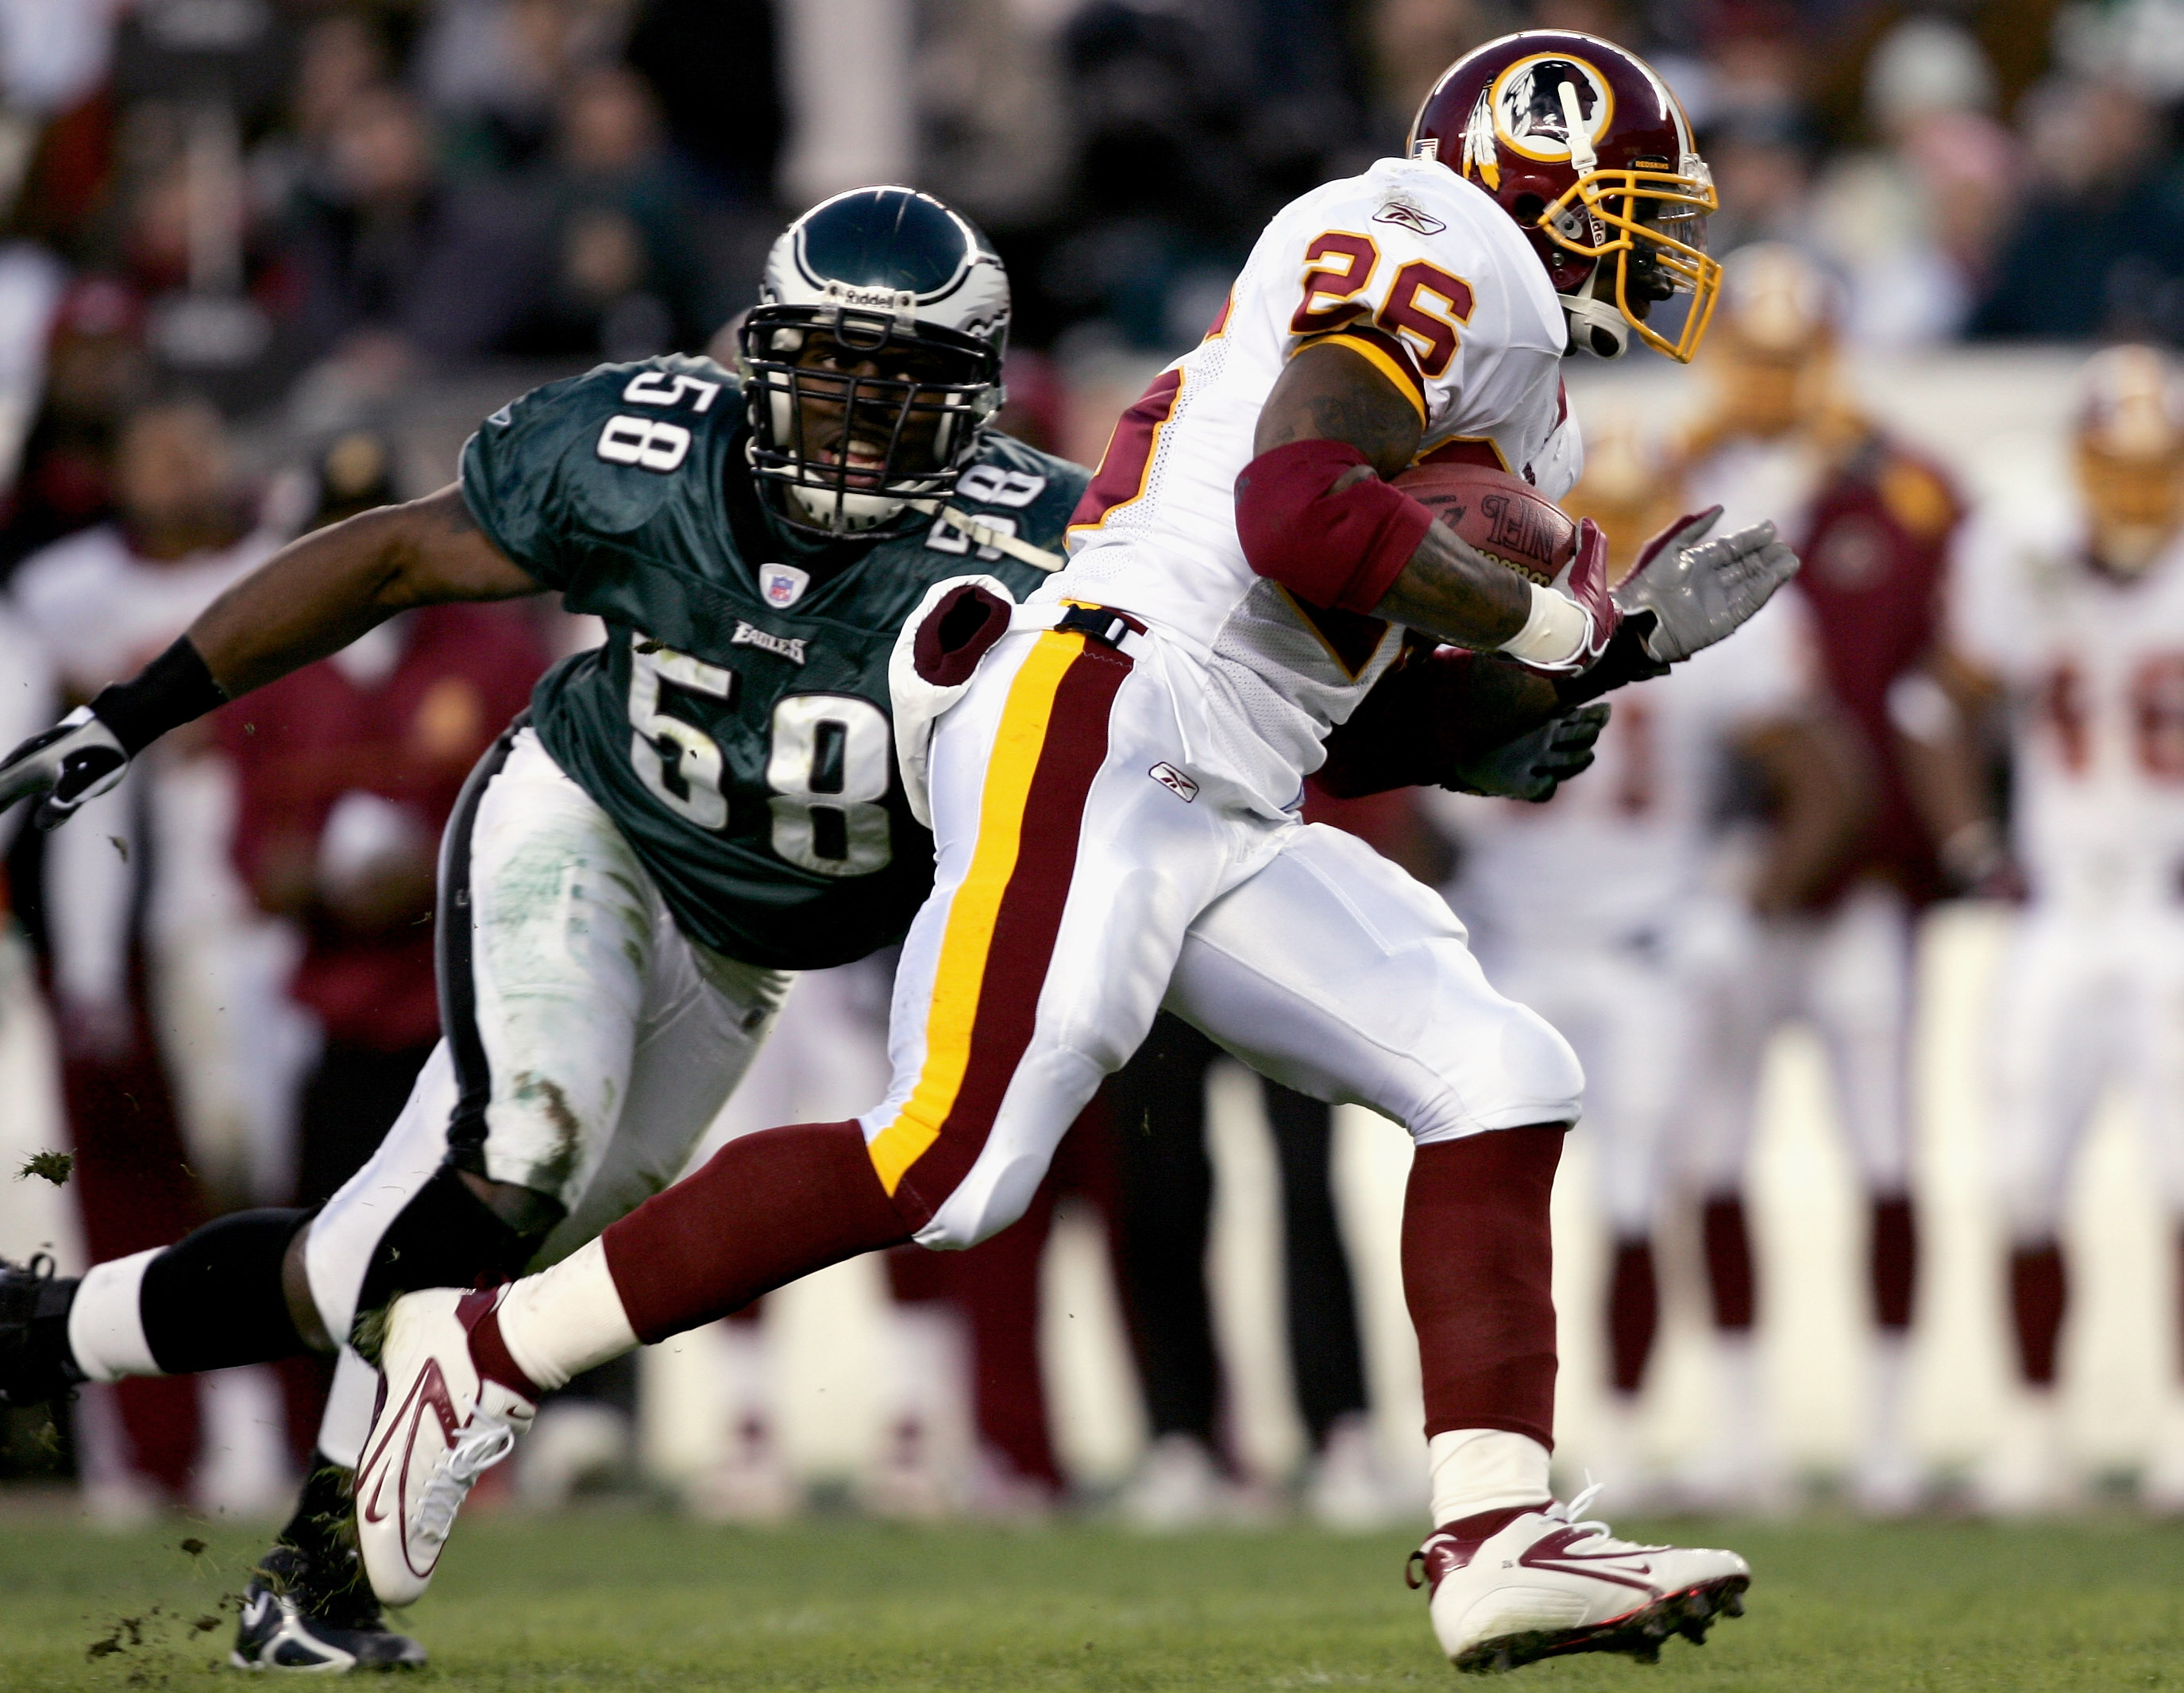 PHILADELPHIA - JANUARY 01:  Runningback Clinton Portis #26 of the Washington Redskins carries the ball away from Trent Cole #58 of the Philadelphia Eagles during the first quarter of the game on January 1, 2006 at Lincoln Financial Field in Philadelphia,